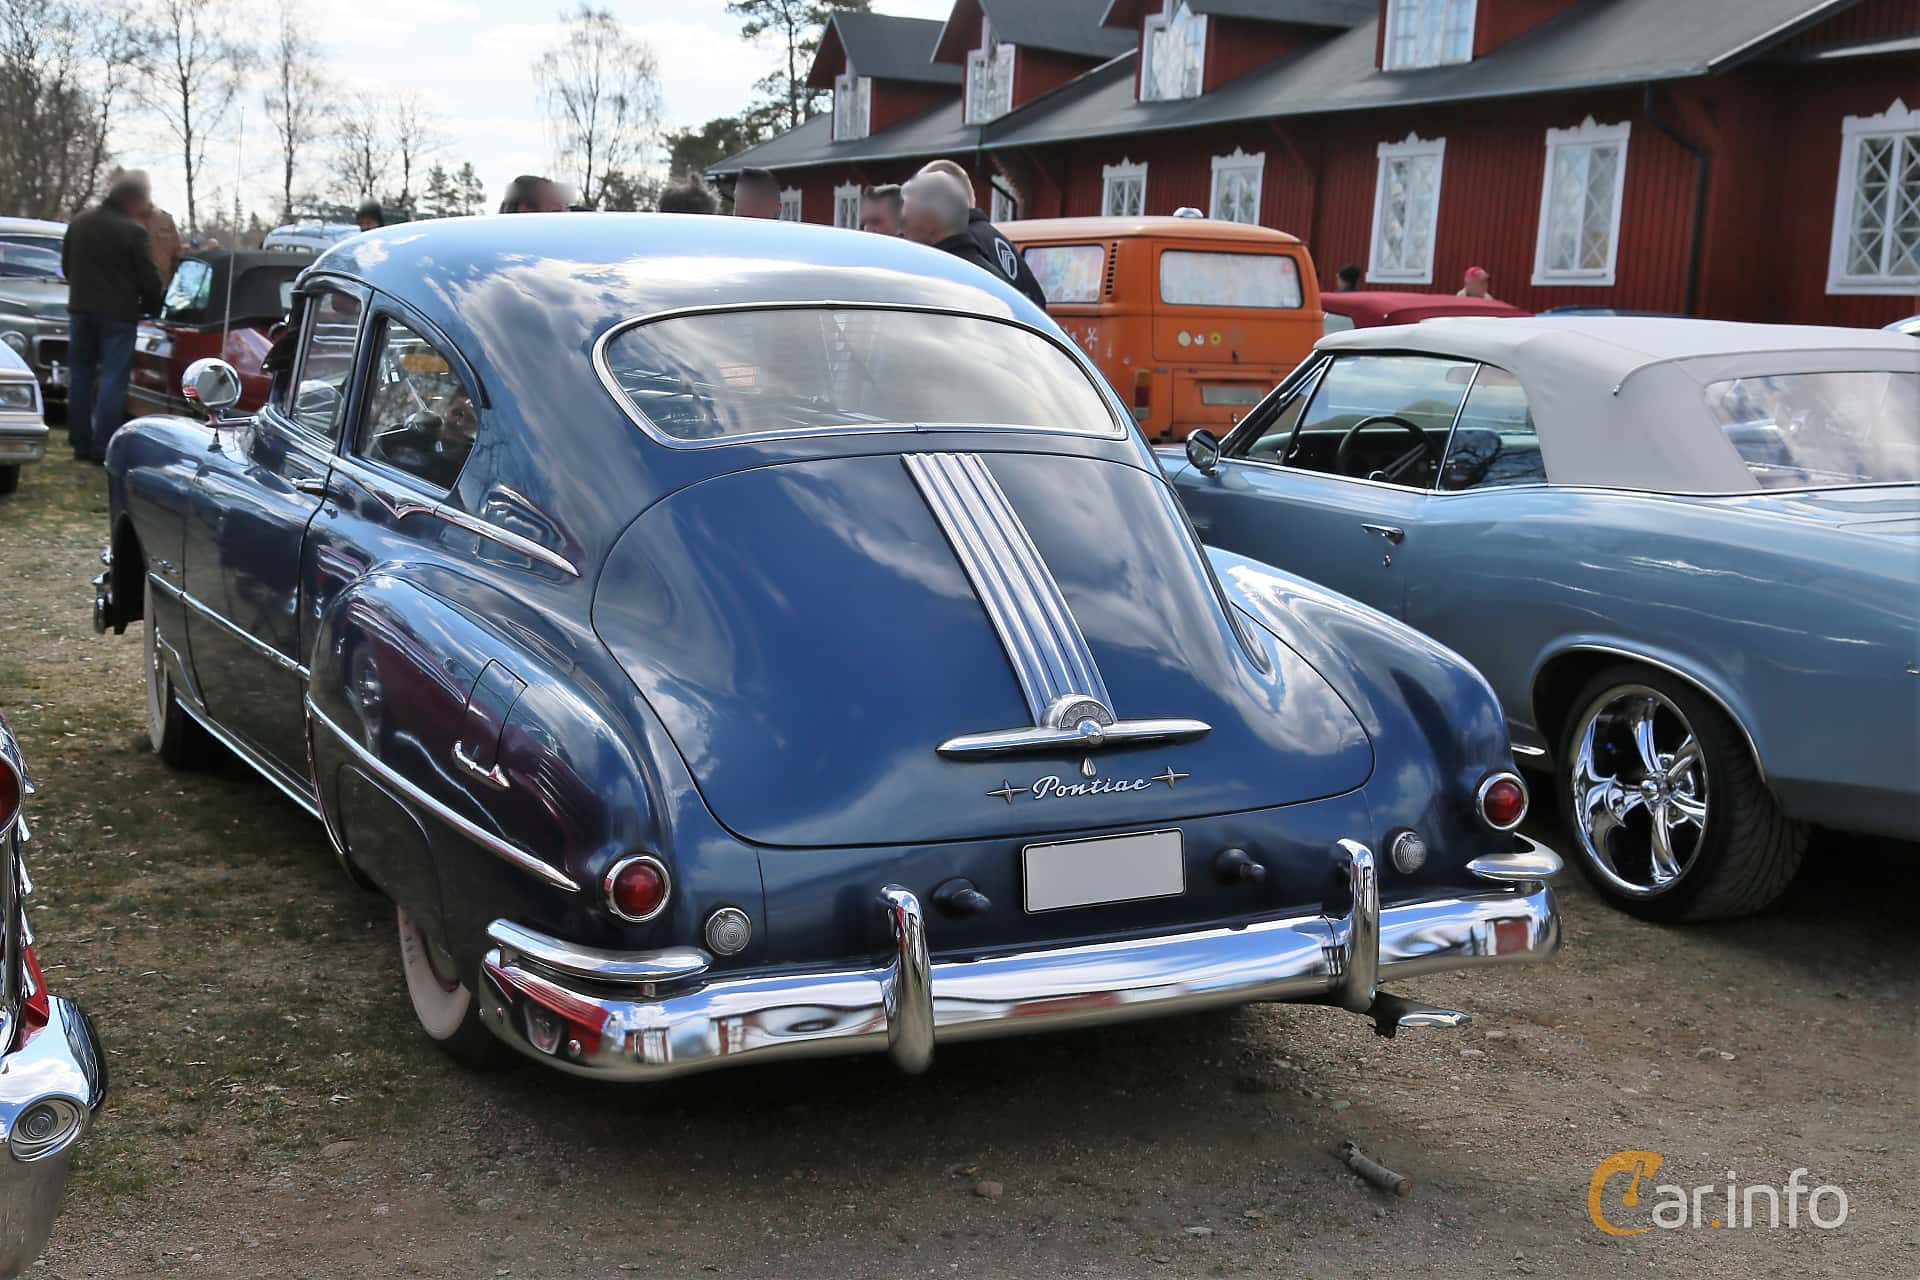 Pontiac Streamliner Coupé 4.4 Hydra-Matic, 110hp, 1950 at Uddevalla Veteranbilsmarknad Backamo, Ljungsk 2019